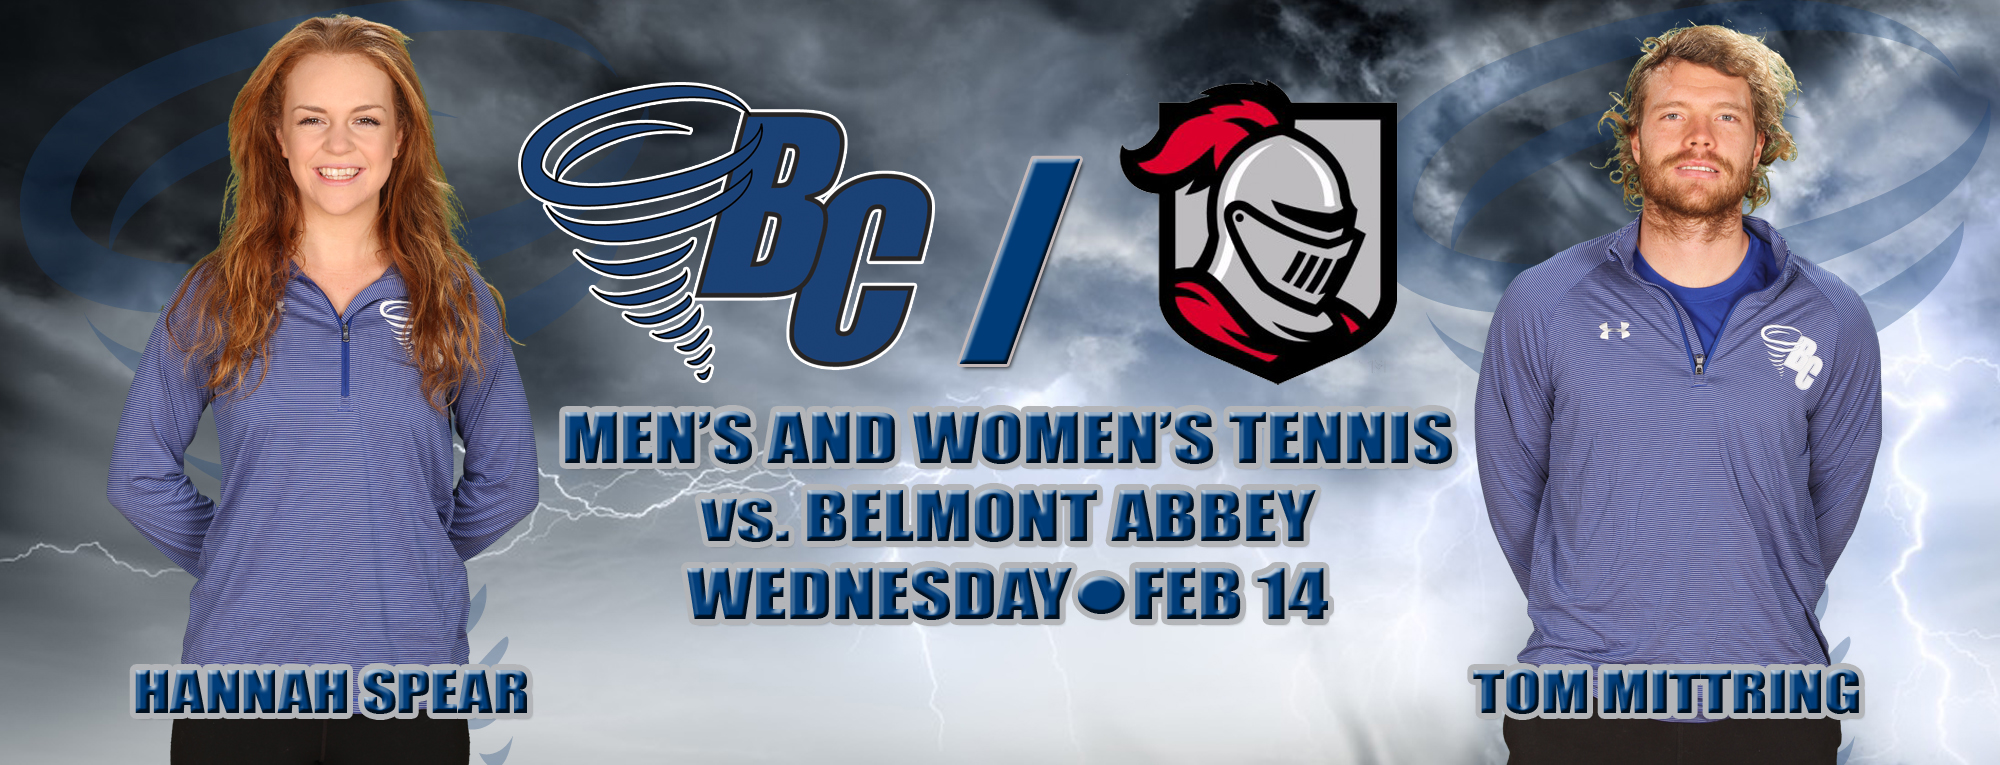 Brevard Tennis Set to Bounce Back Against Belmont Abbey